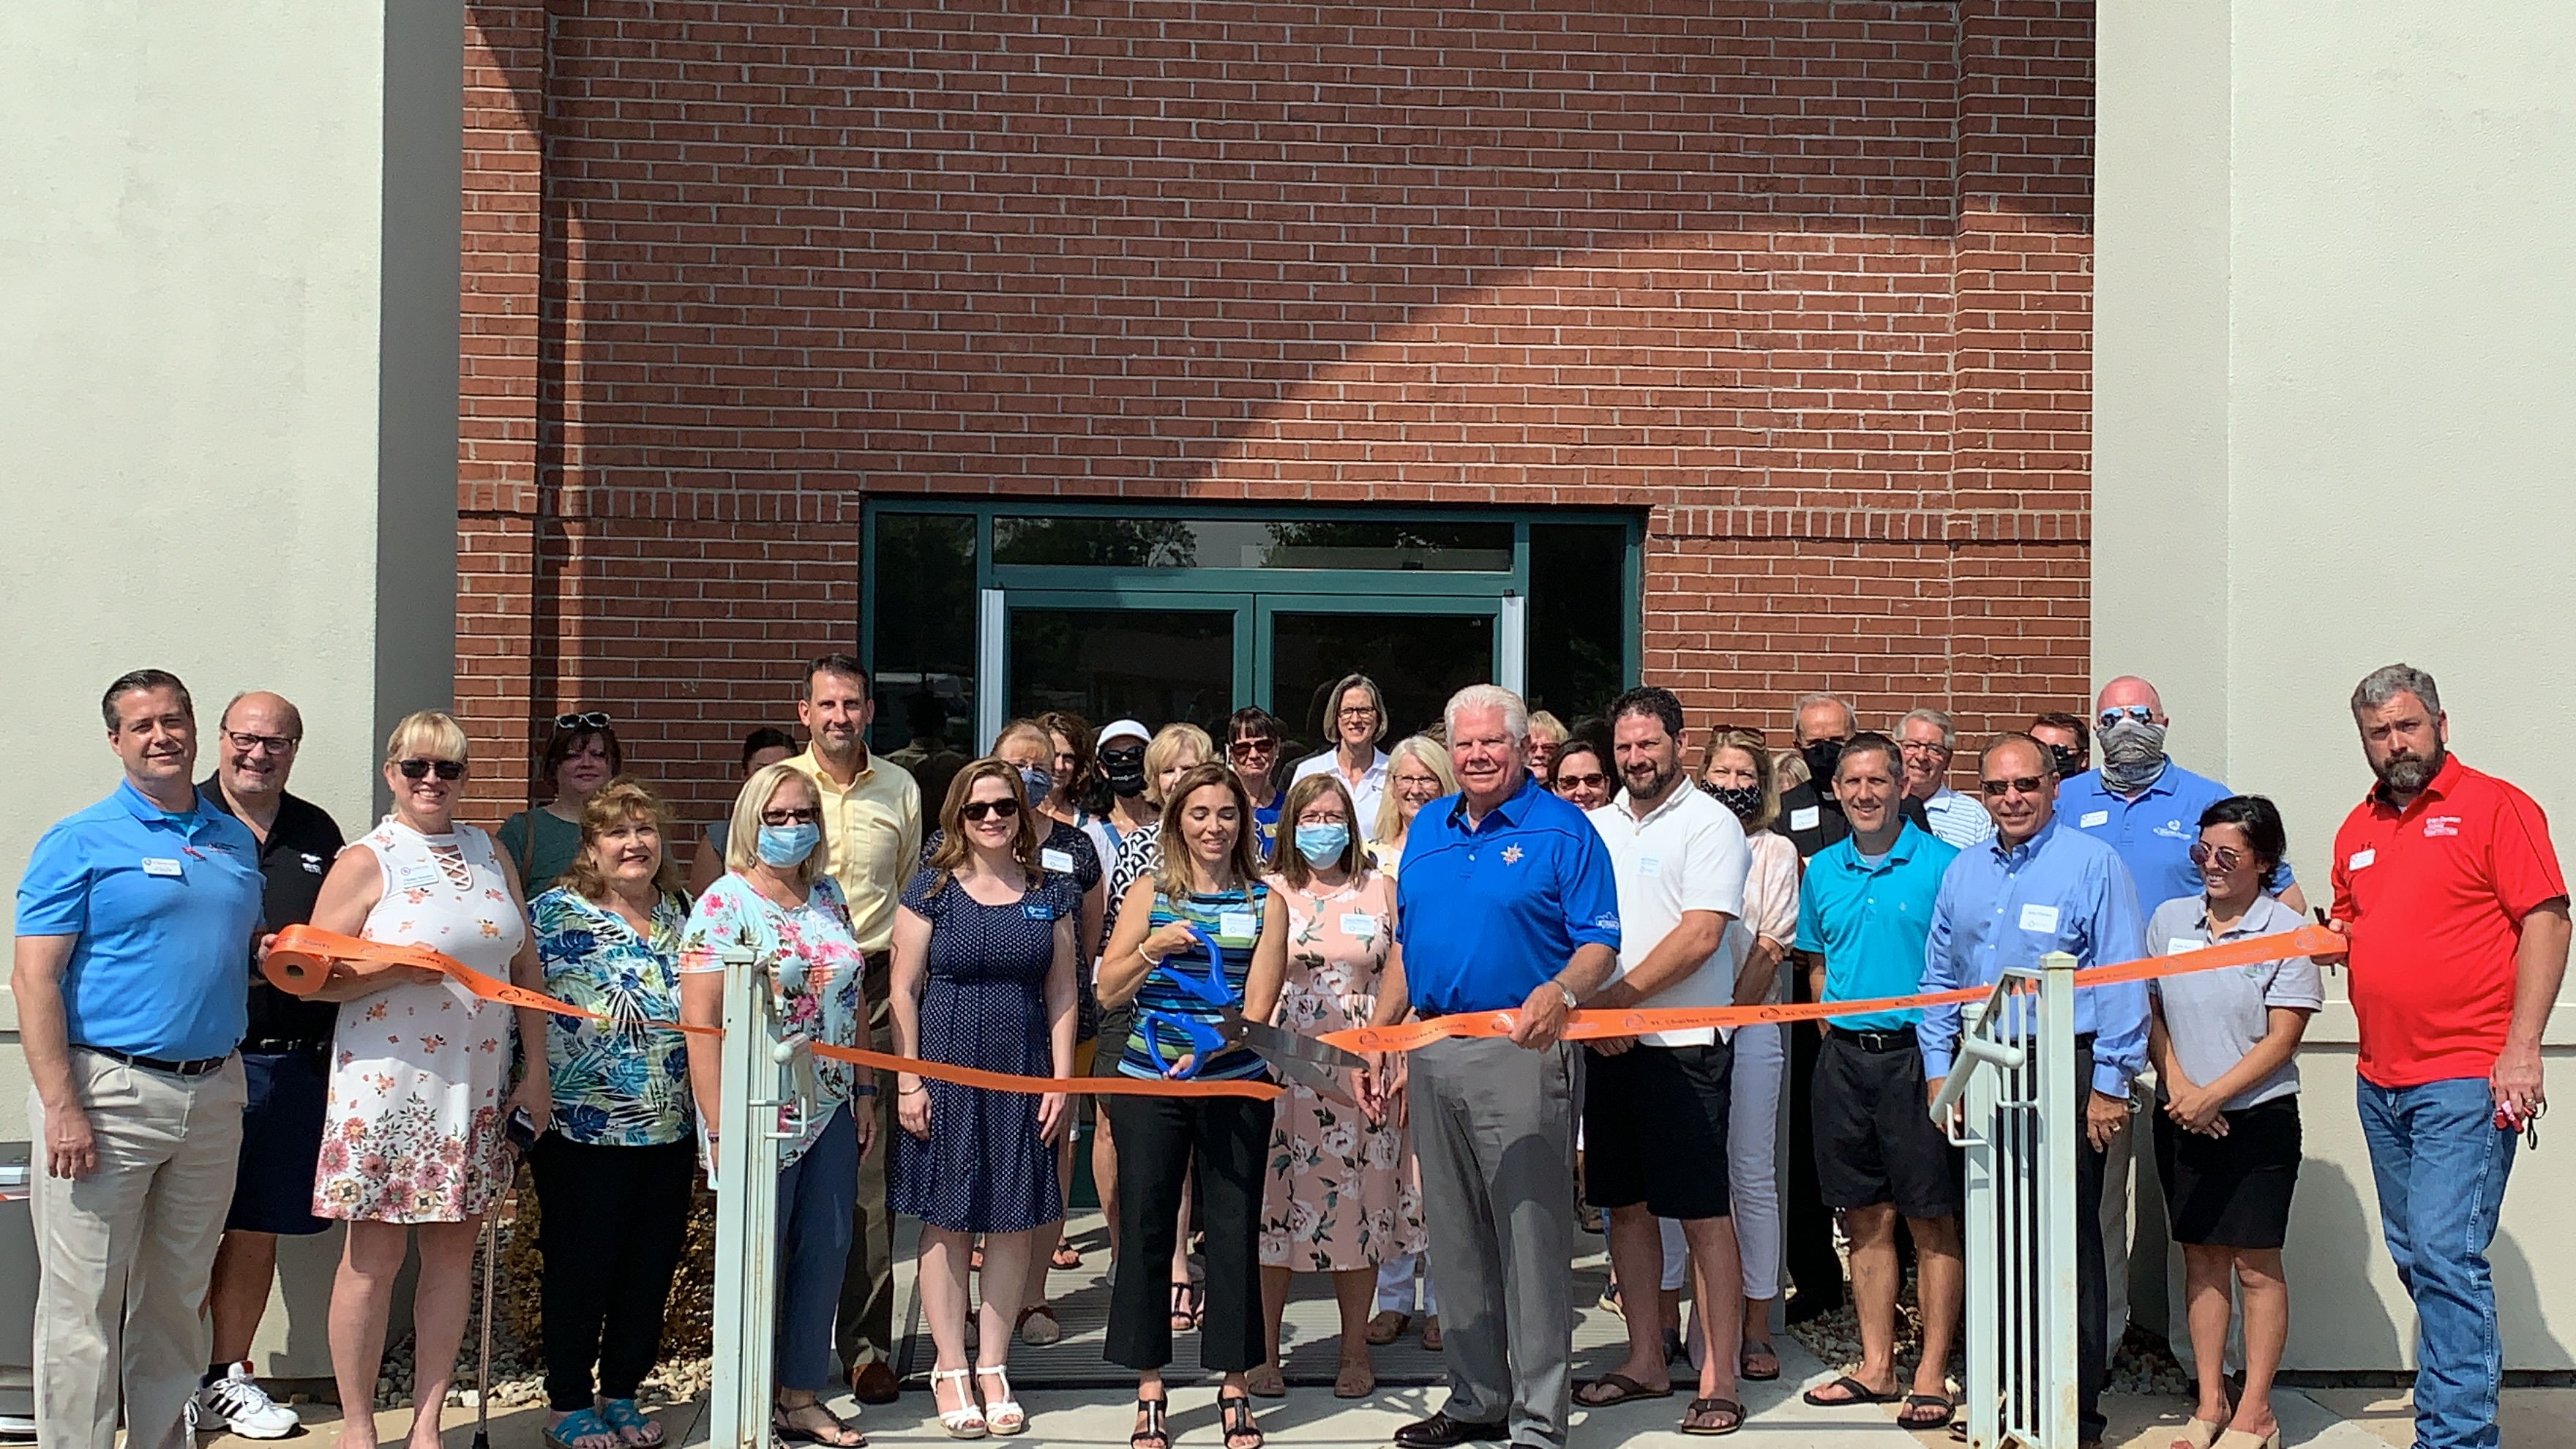 Birthright of St. Charles Celebrates New Office with Ribbon Cutting